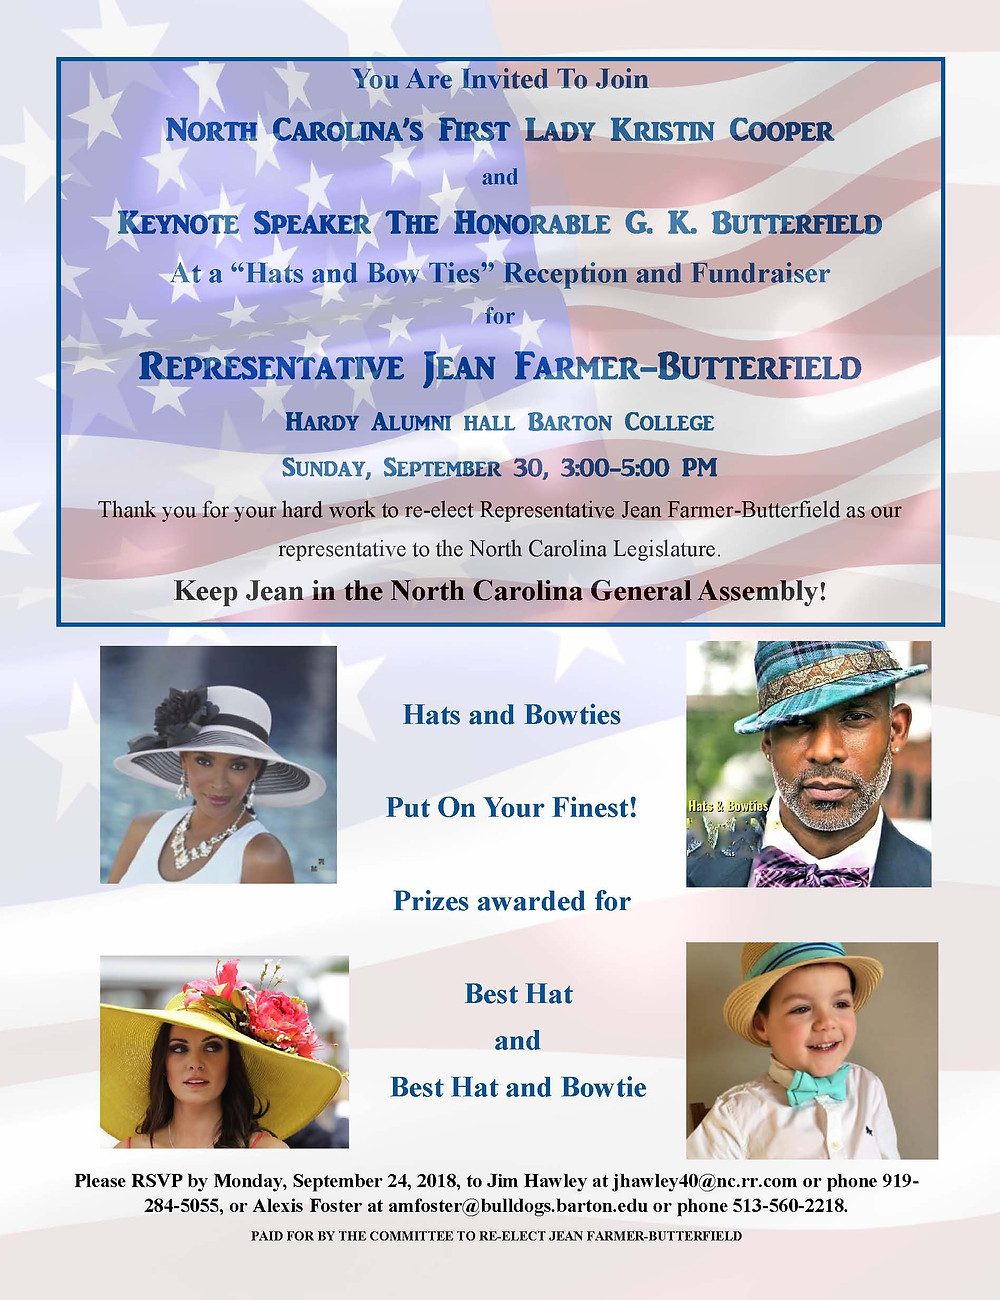 hats-and-bow-ties-fundraiser-for-jean-farmer-butterfield